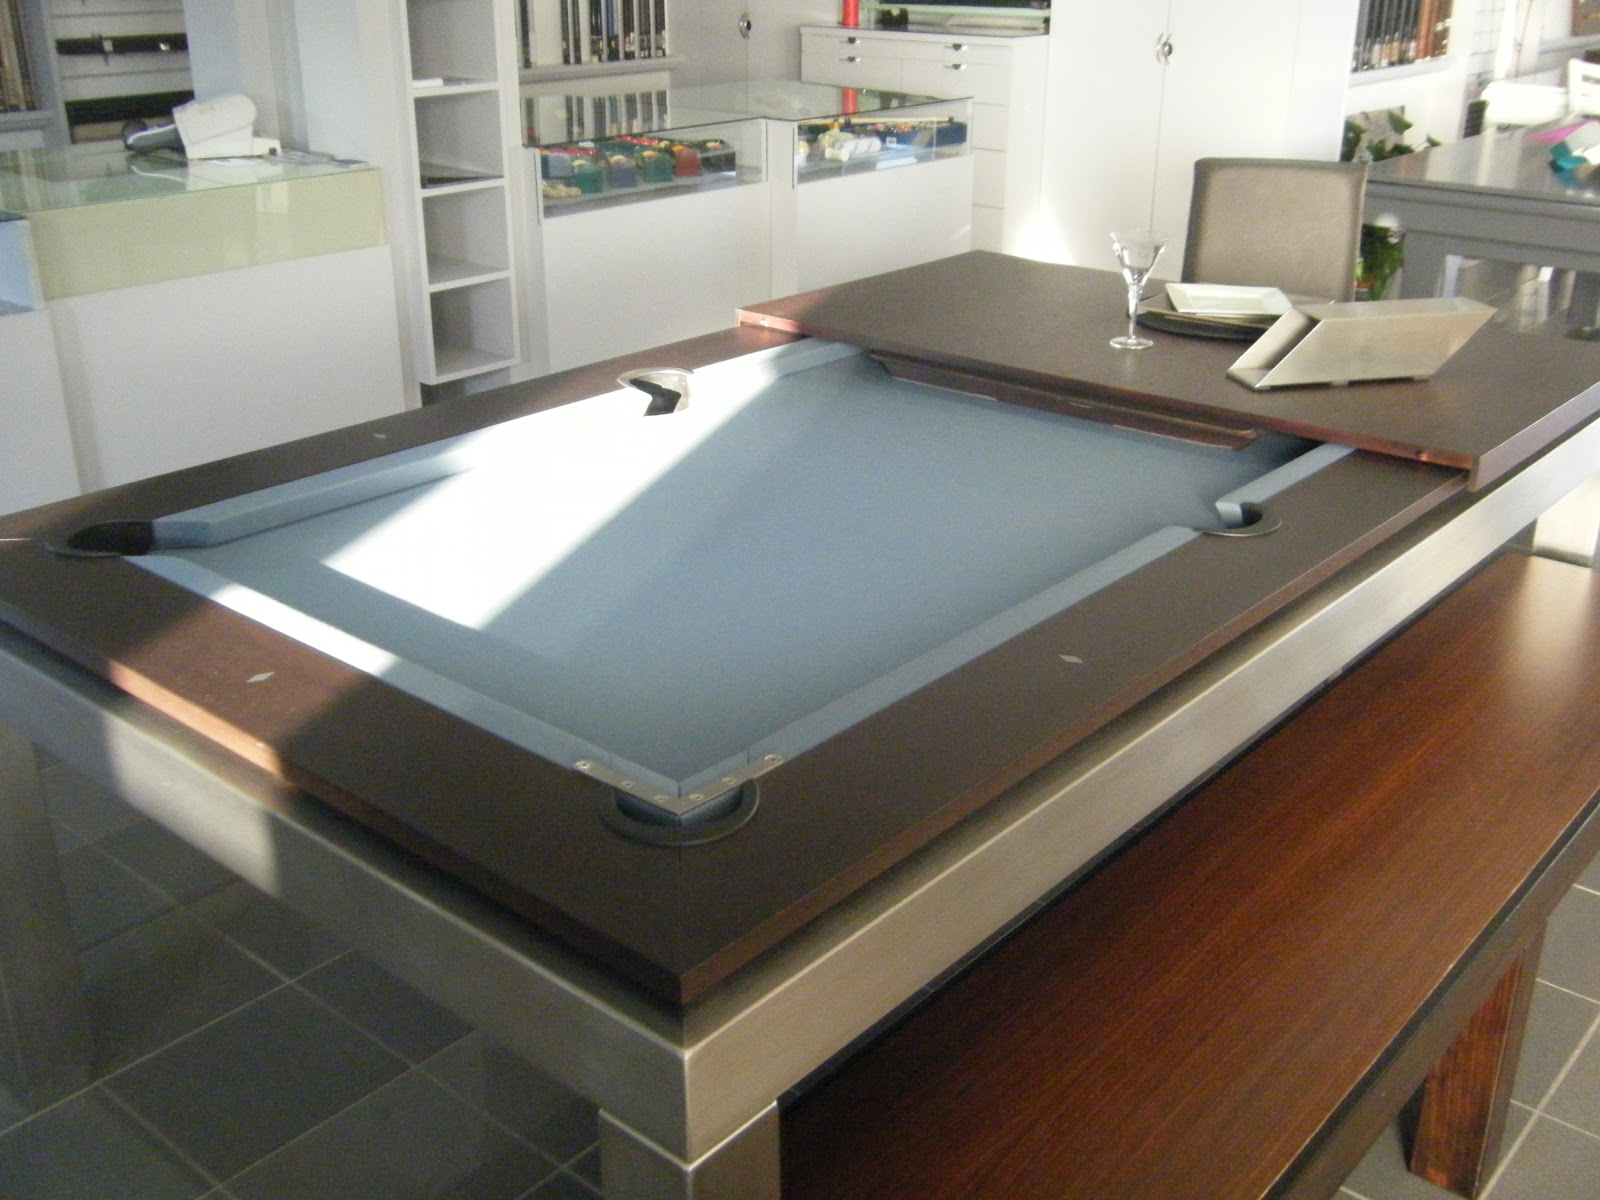 Fabricant de billards juin 2012 - Billard transformable ...